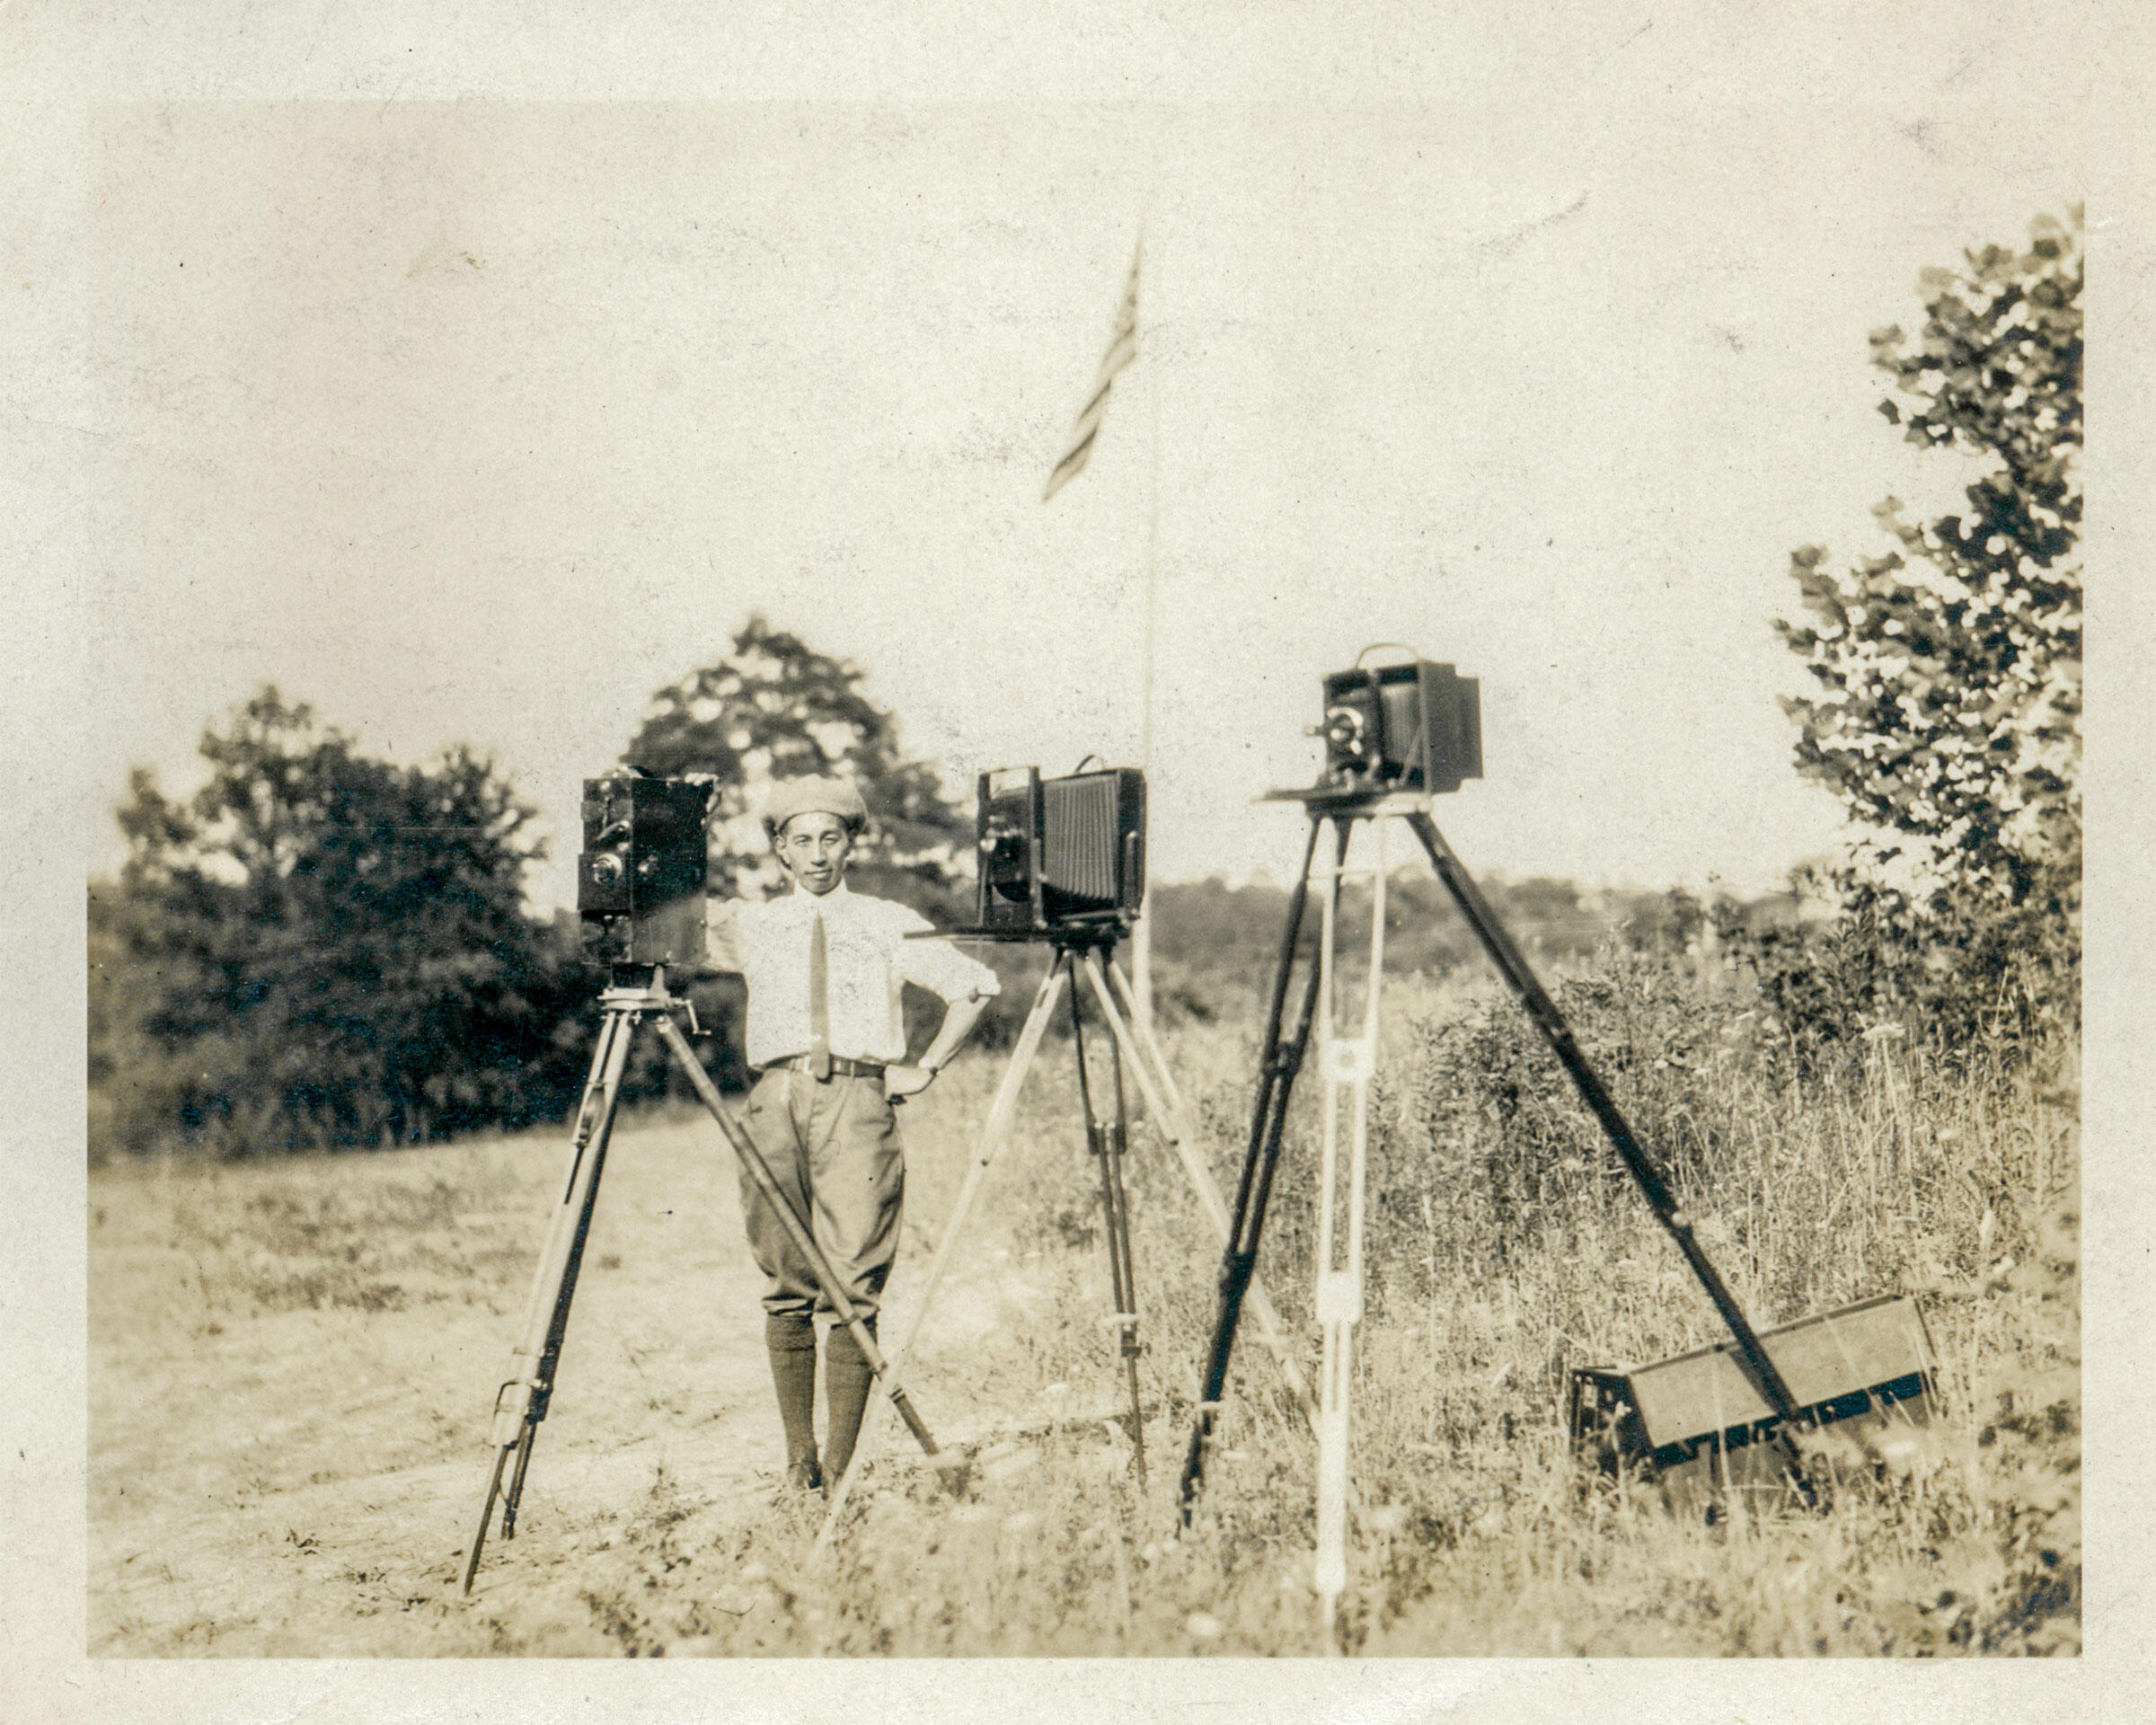 George Masa poses with three view cameras, 1920s. North Carolina Collection, Pack Memorial Public Library